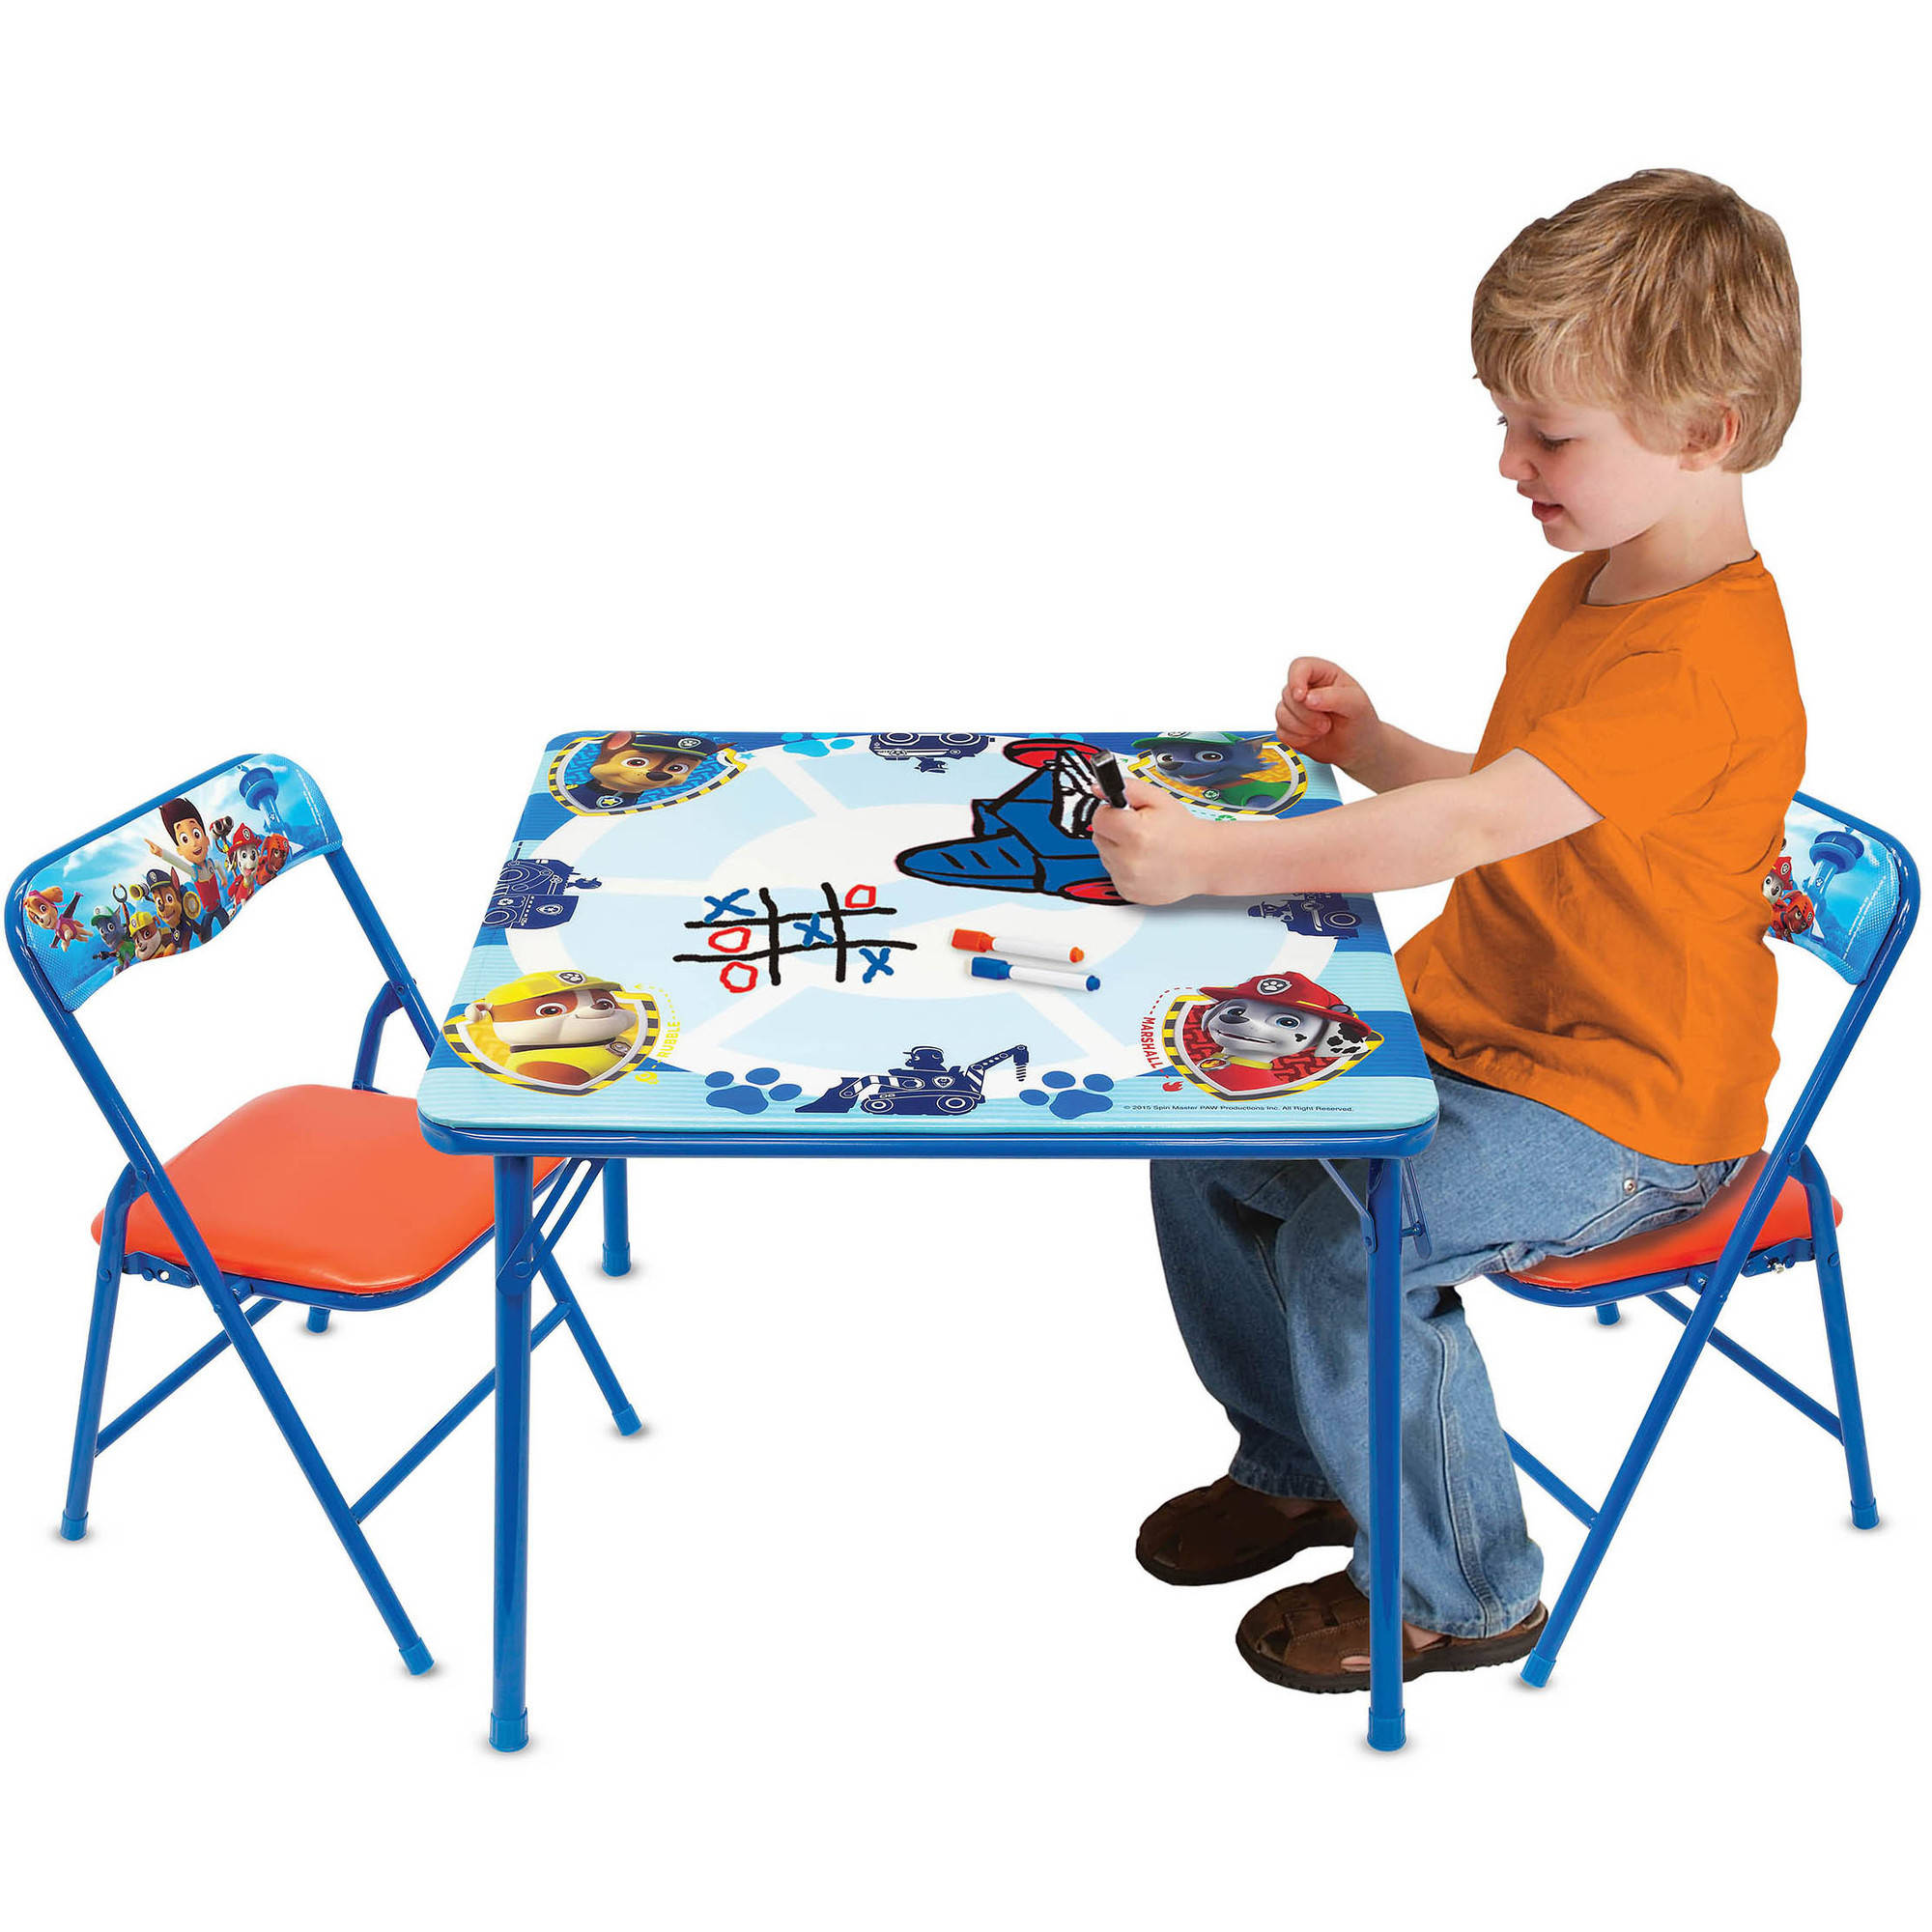 Paw Patrol Erasable Activity Table Set with 3 Erasable Markers